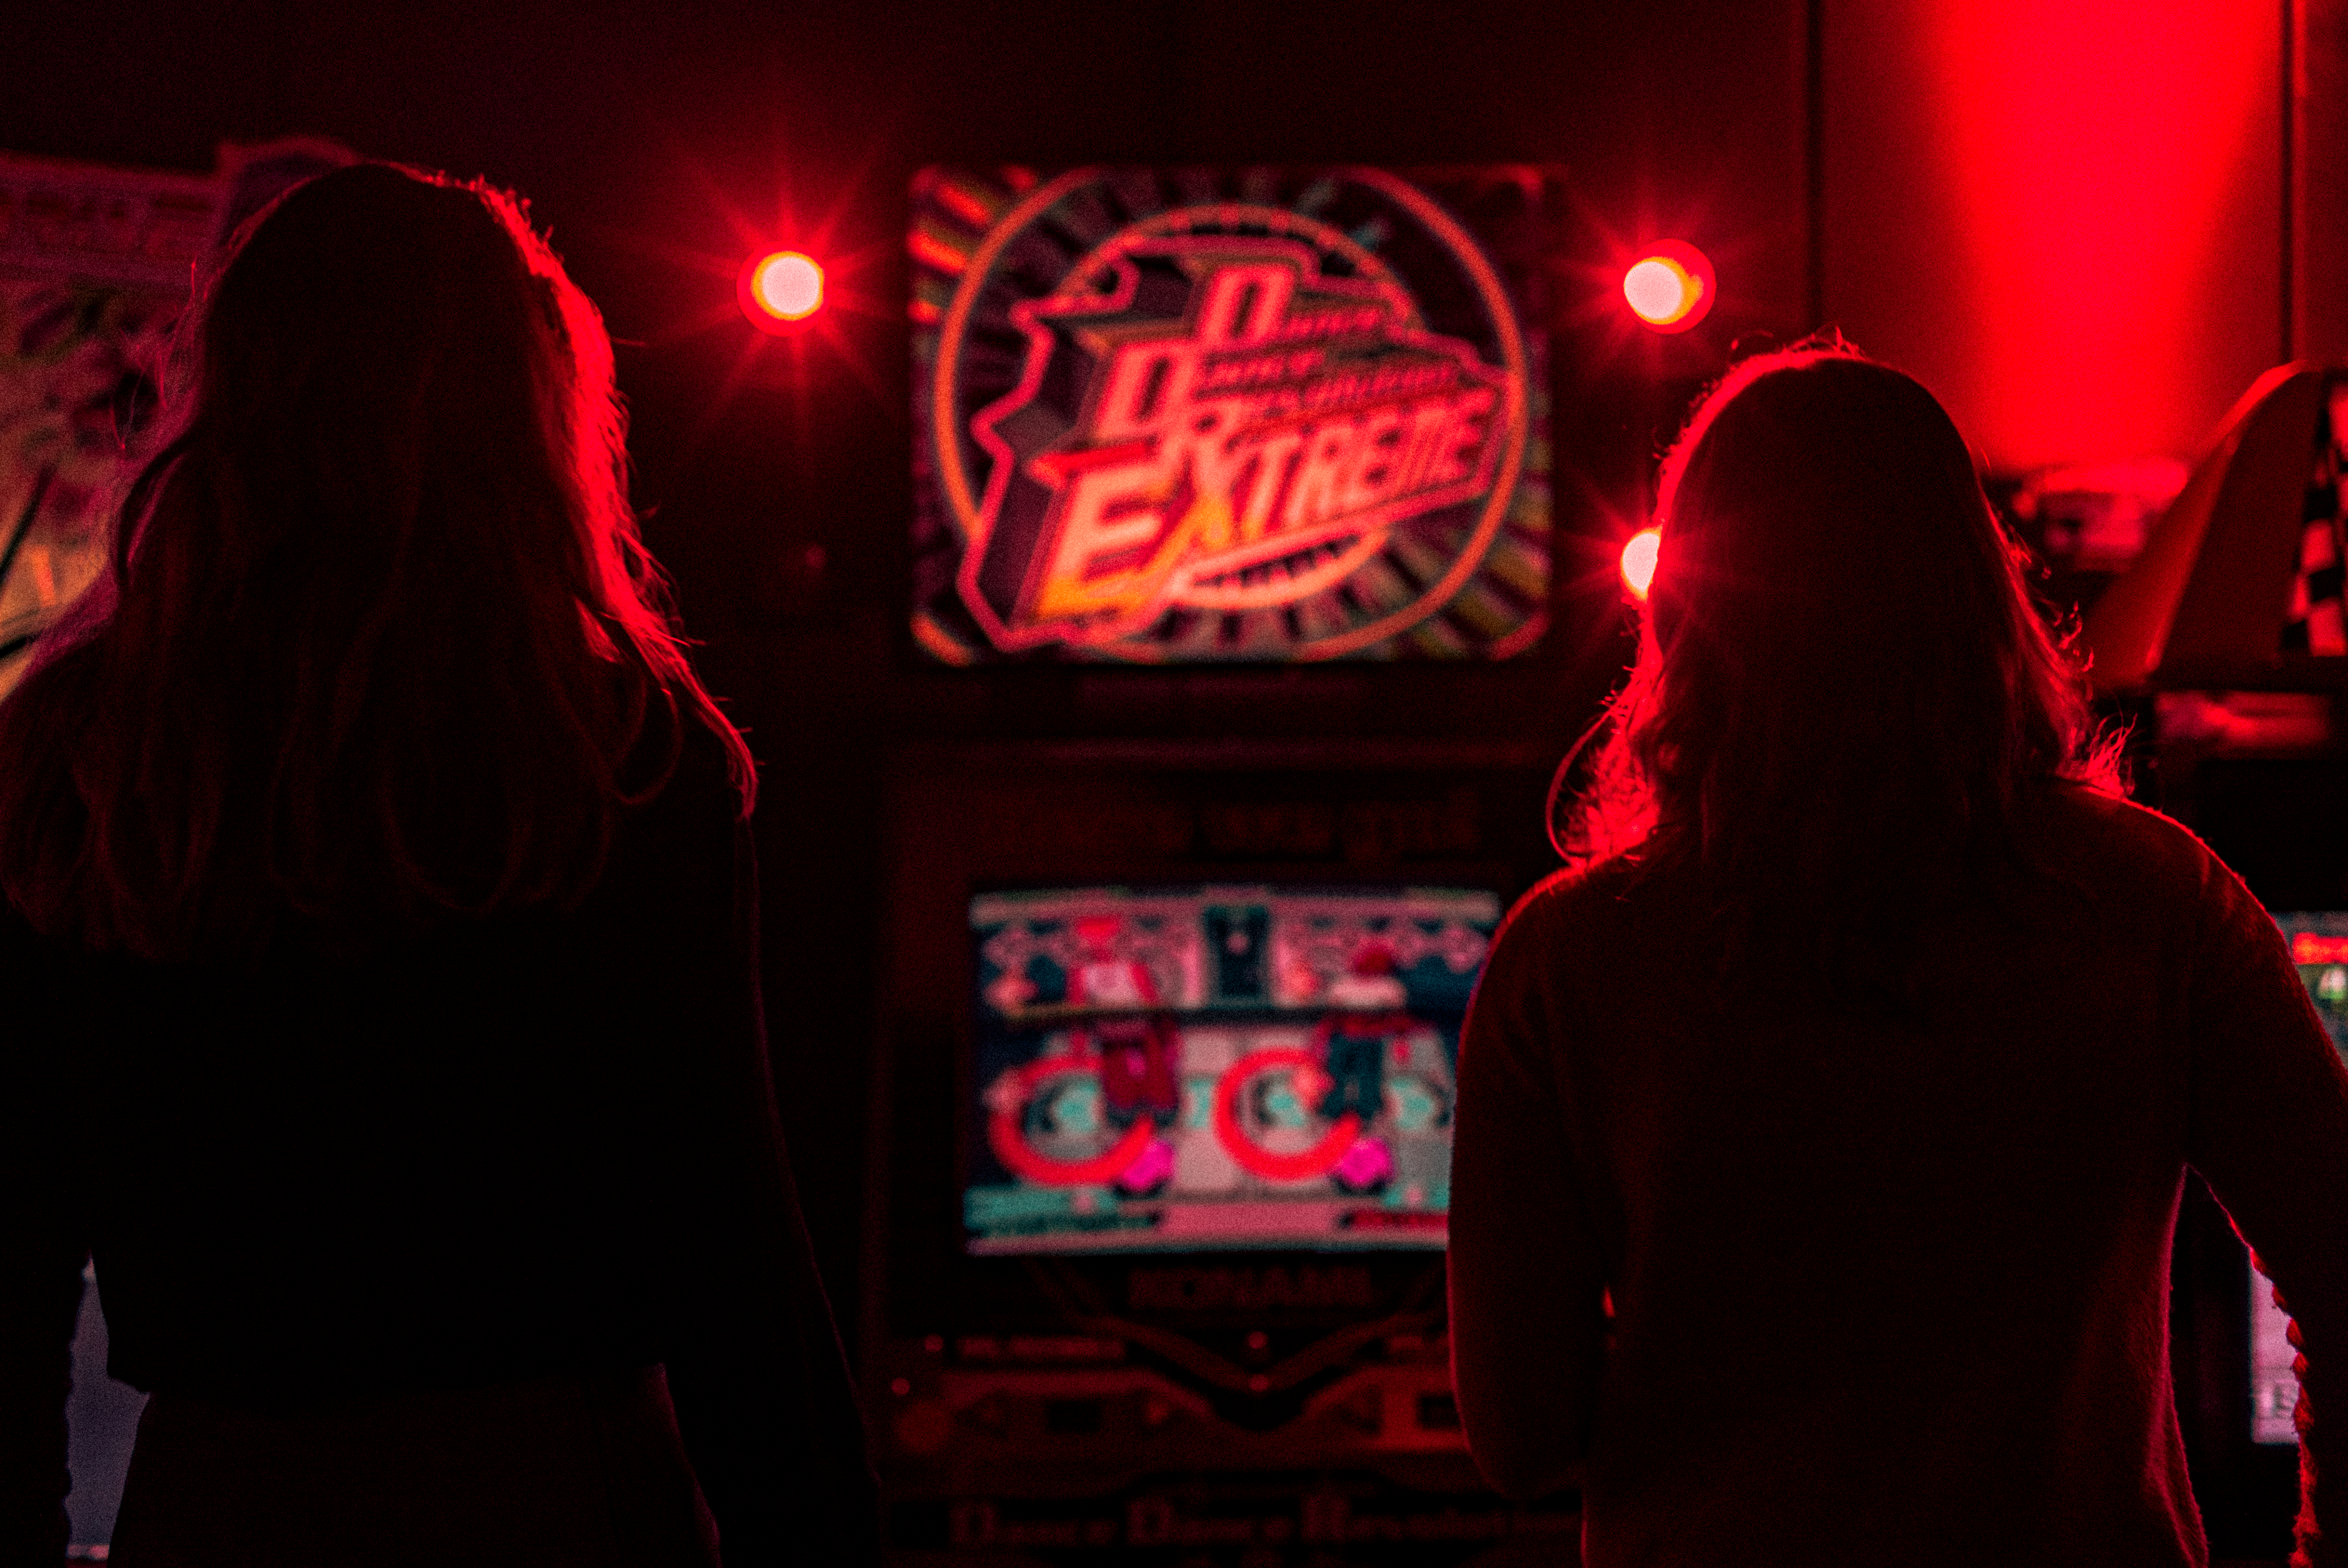 Two women's silhouette playing dance dance extreme at an arcade